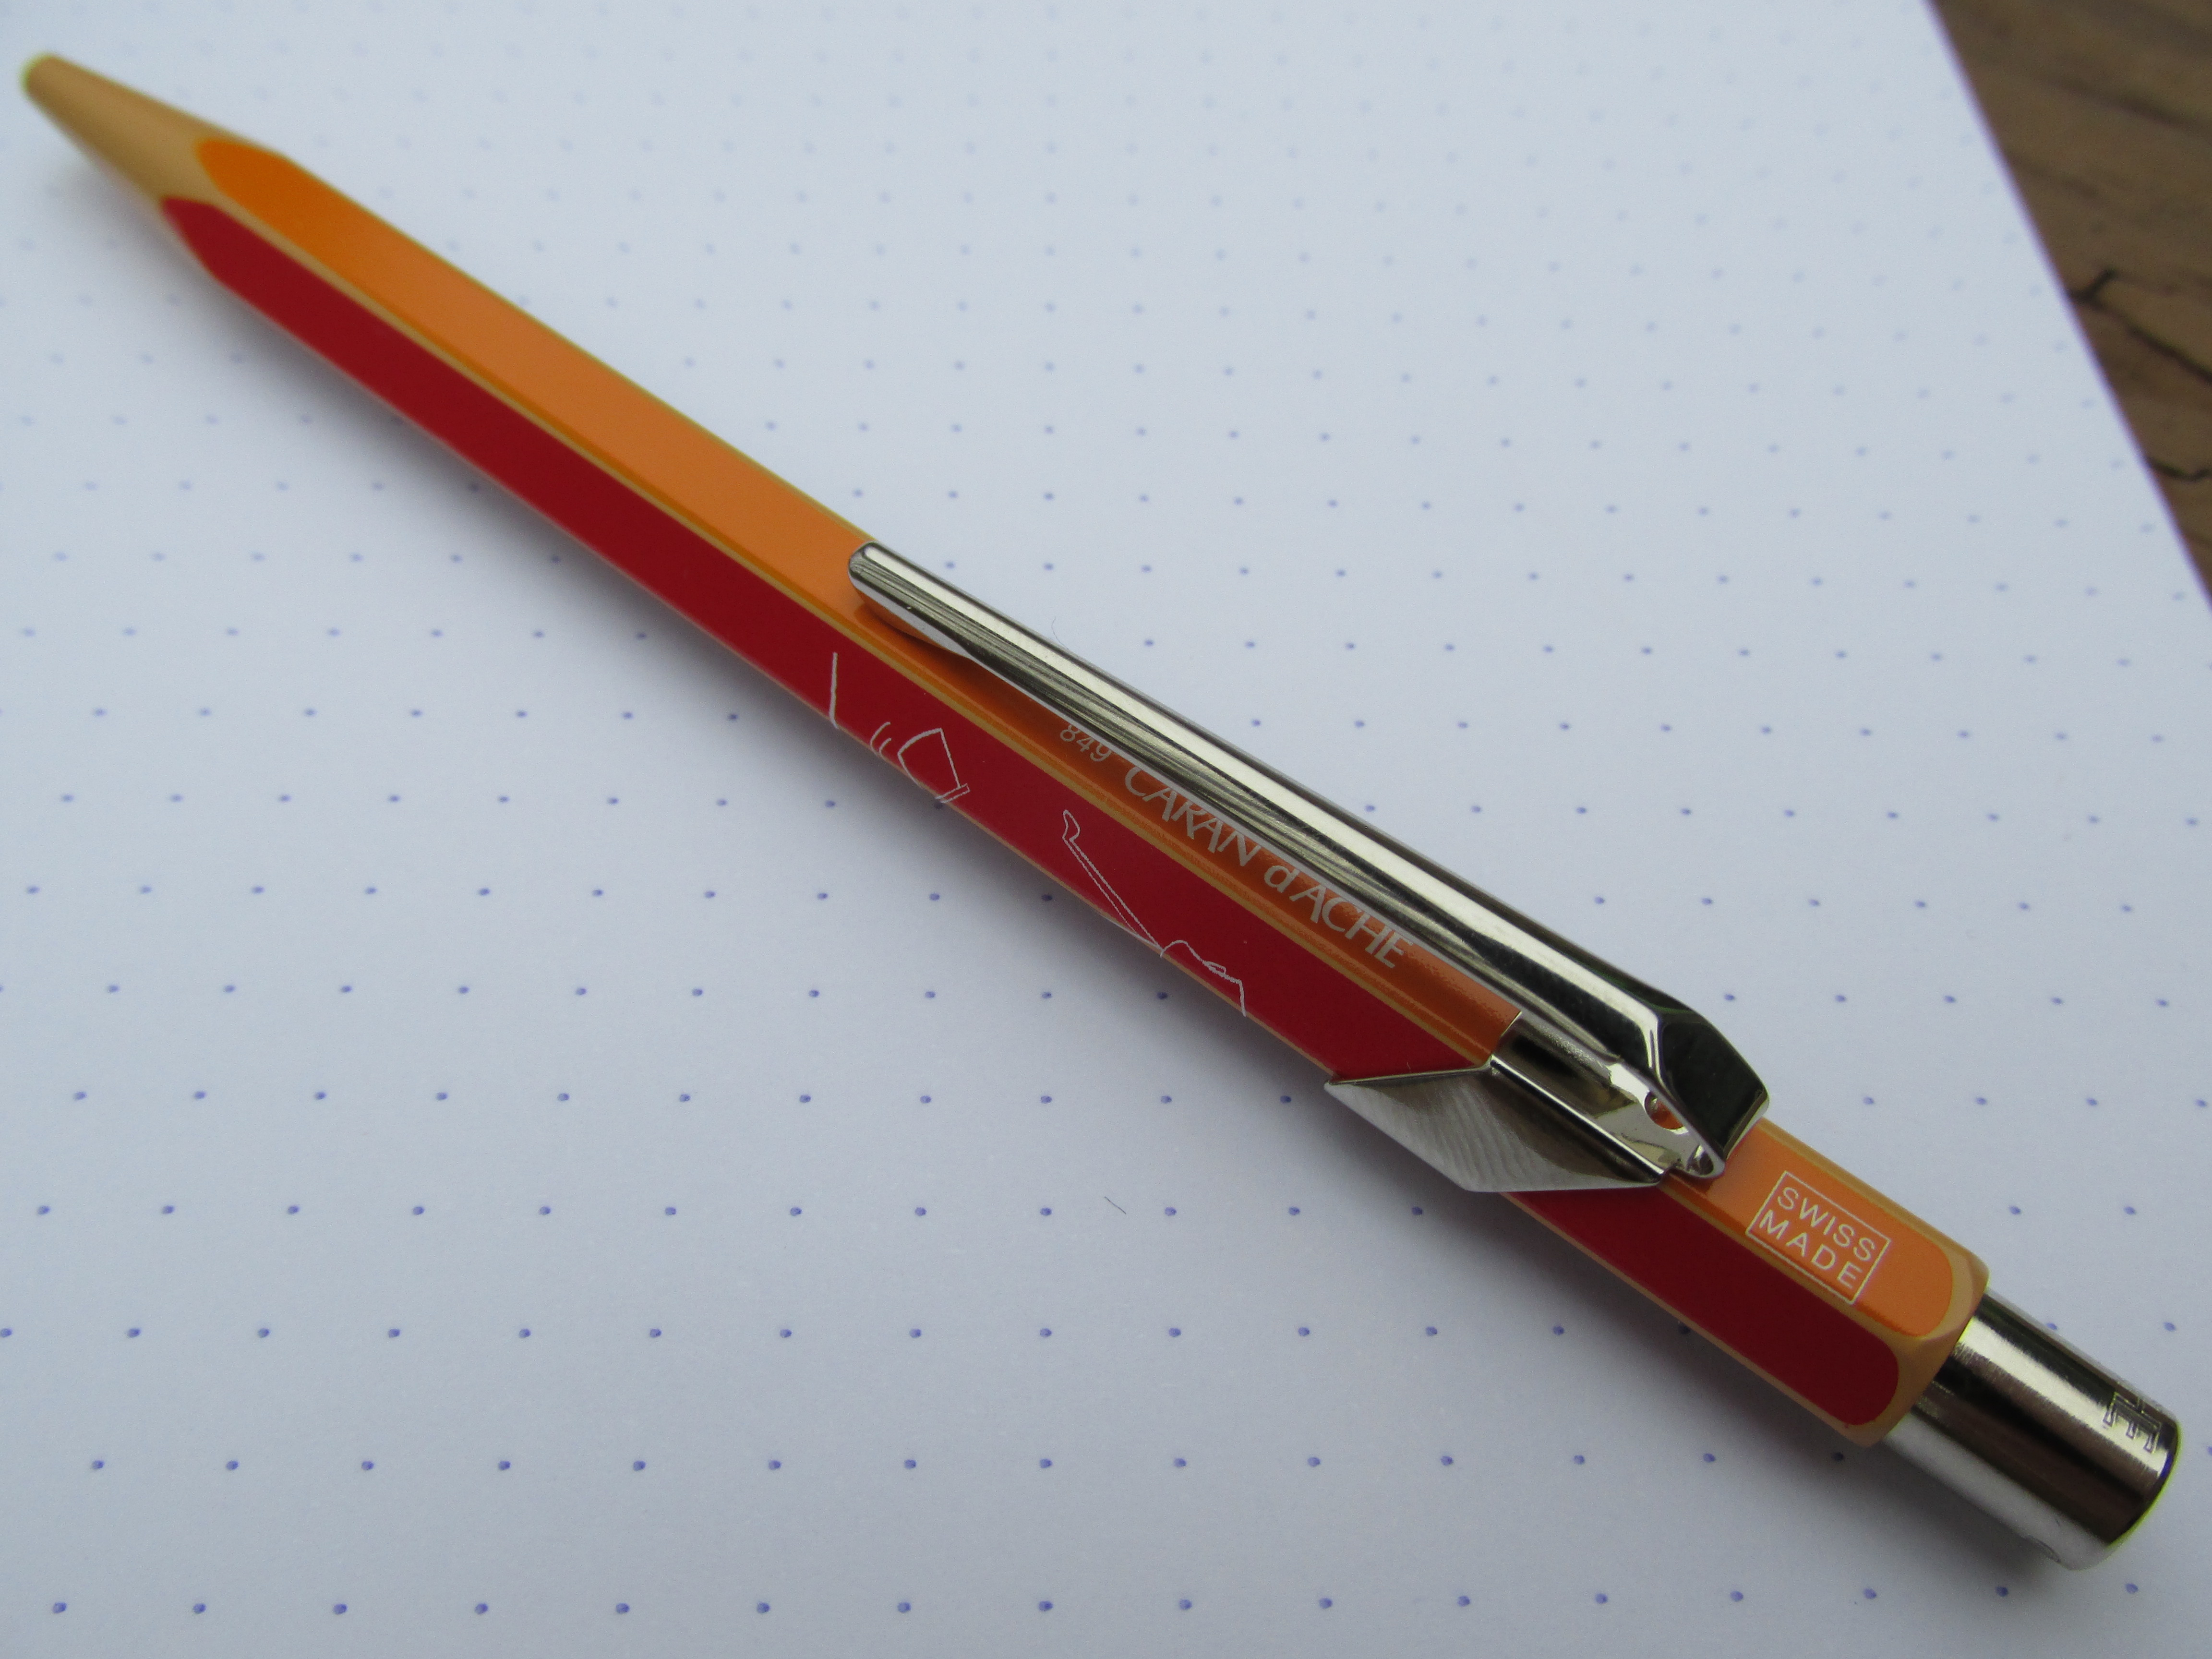 That One Pen Page 3 In Search Of Circuit Board Rollerball And Ink Nerd Gift Carandache849k